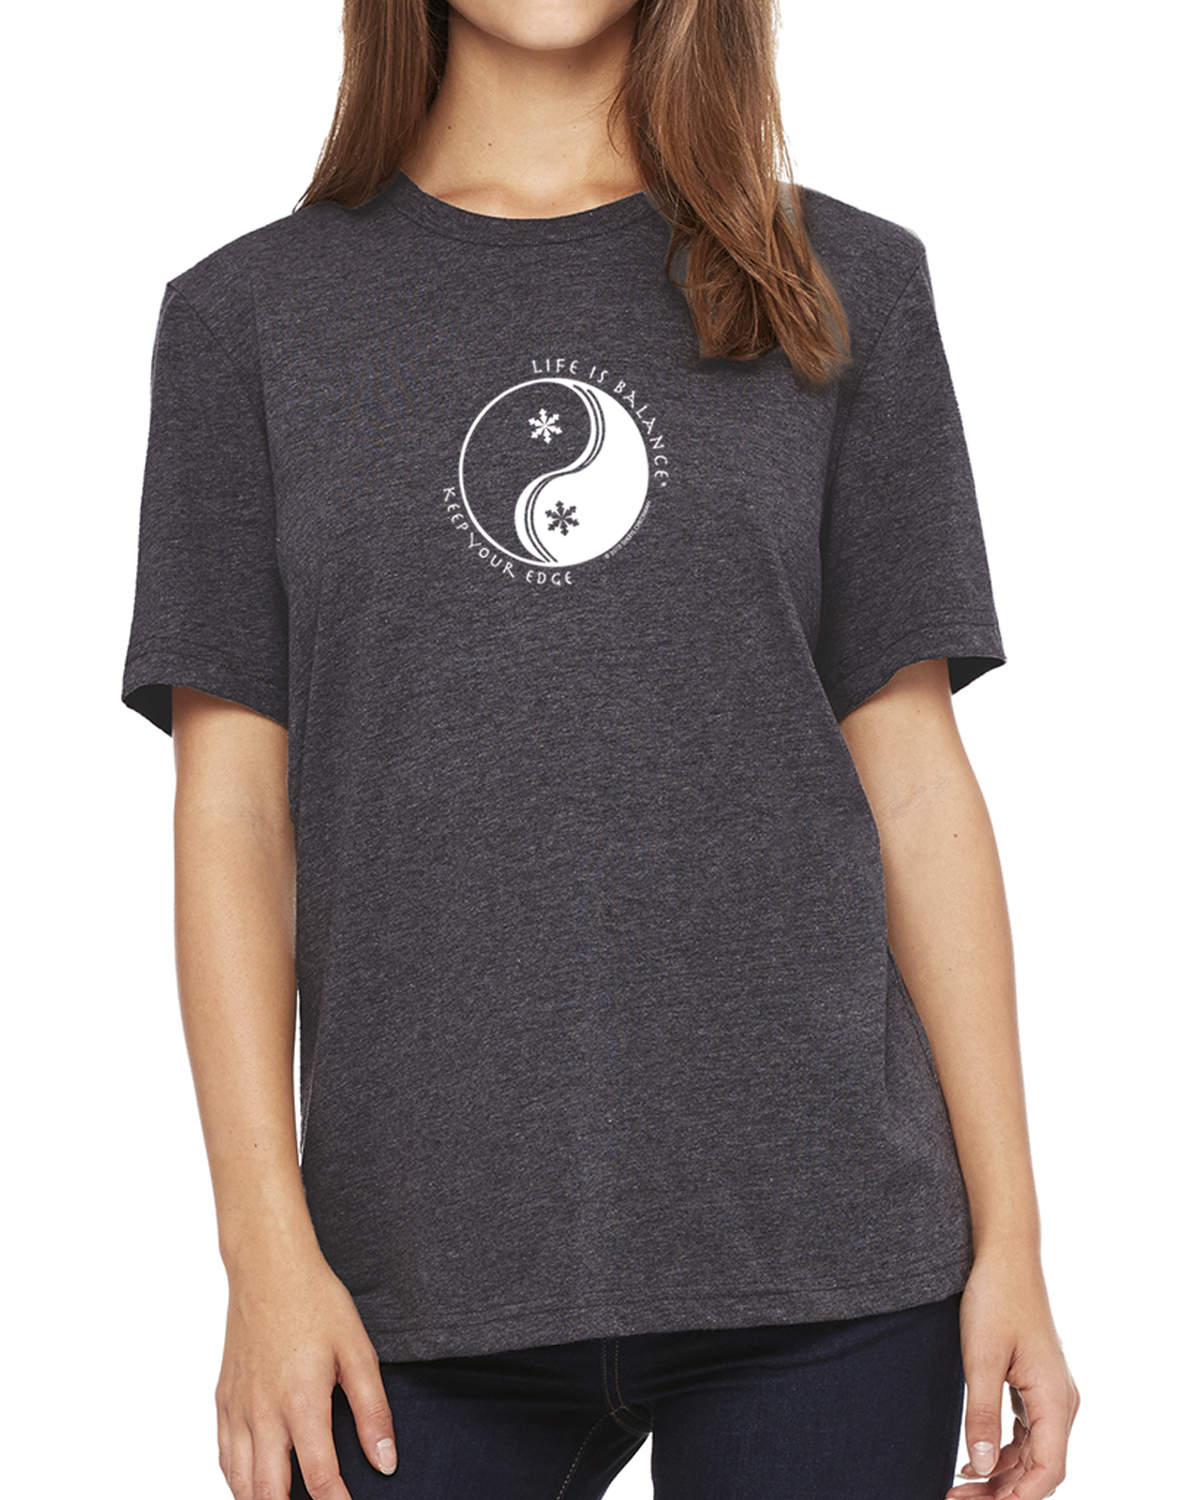 Women's Short Sleeve T-Shirt (dark gray heather)